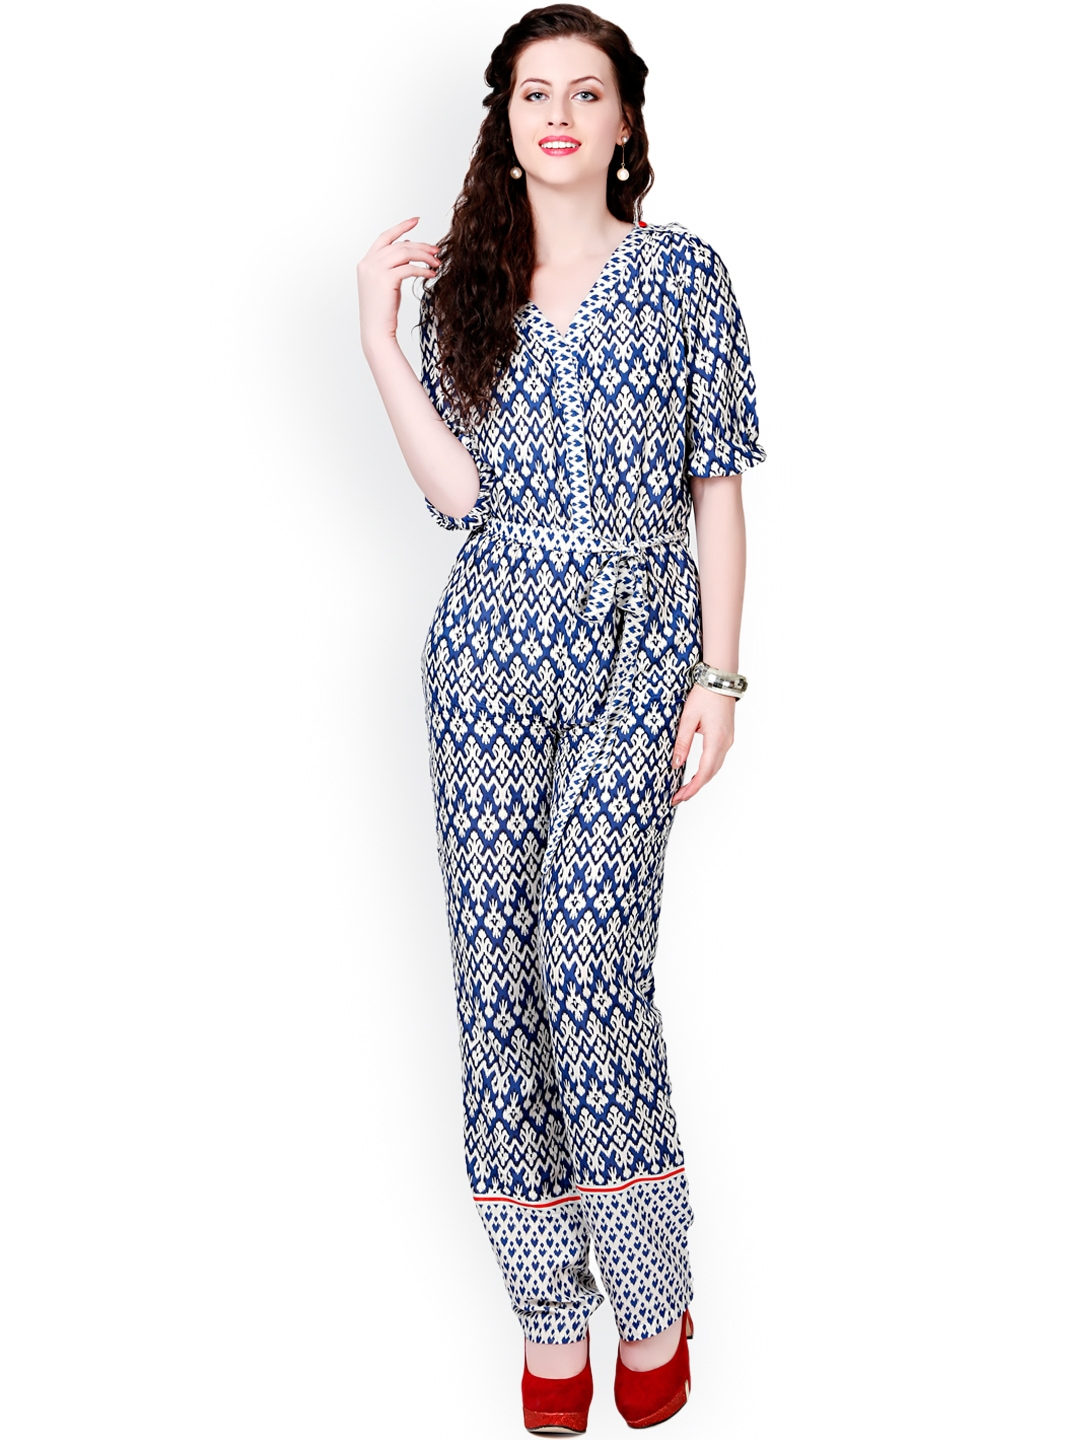 Buy Black And Multicolor Printed Jumpsuit online at a discounted price from bigframenetwork.ga Shop Fashion, Women's Clothing products @ Lowest Prices. Shop now! Enjoy Free Shipping & COD across India. EMI options available with Easy Return/Replacement bigframenetwork.ga: ₹